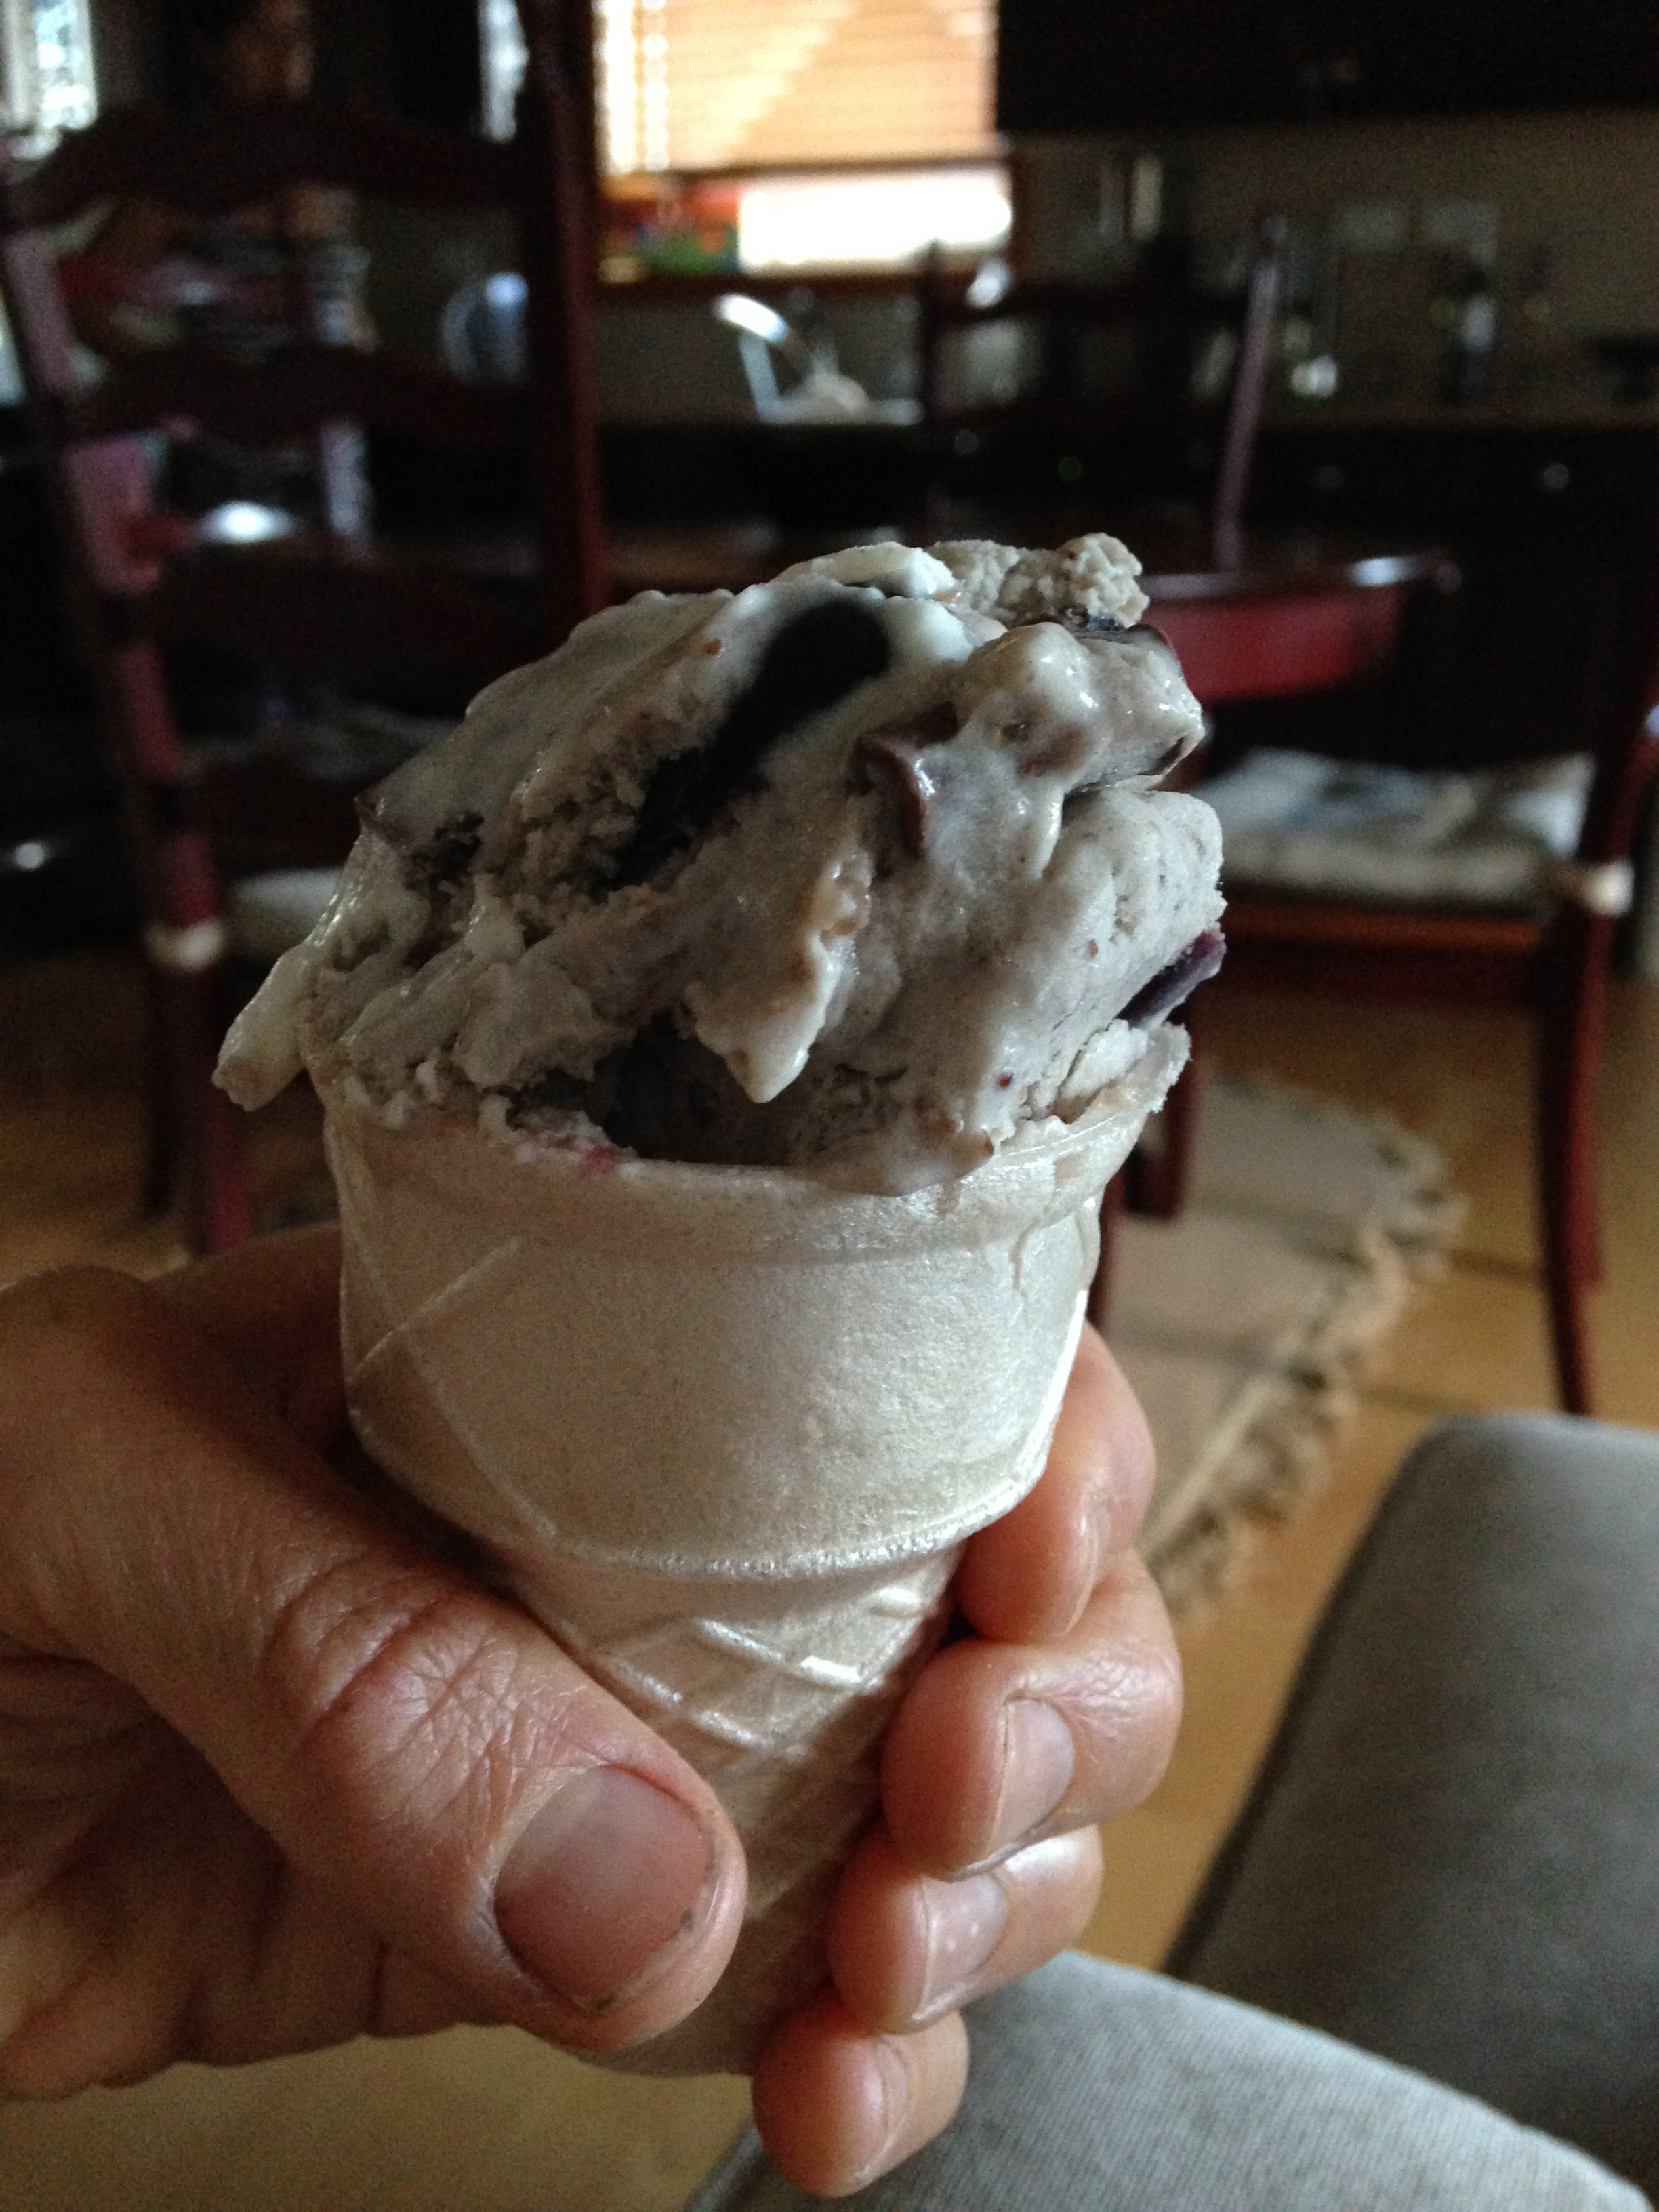 I love my ice cream on a gluten free cone.  These cones  have pretty paleo friently ingredients and can be a nice little paleo cheat #notperfectpaleo.